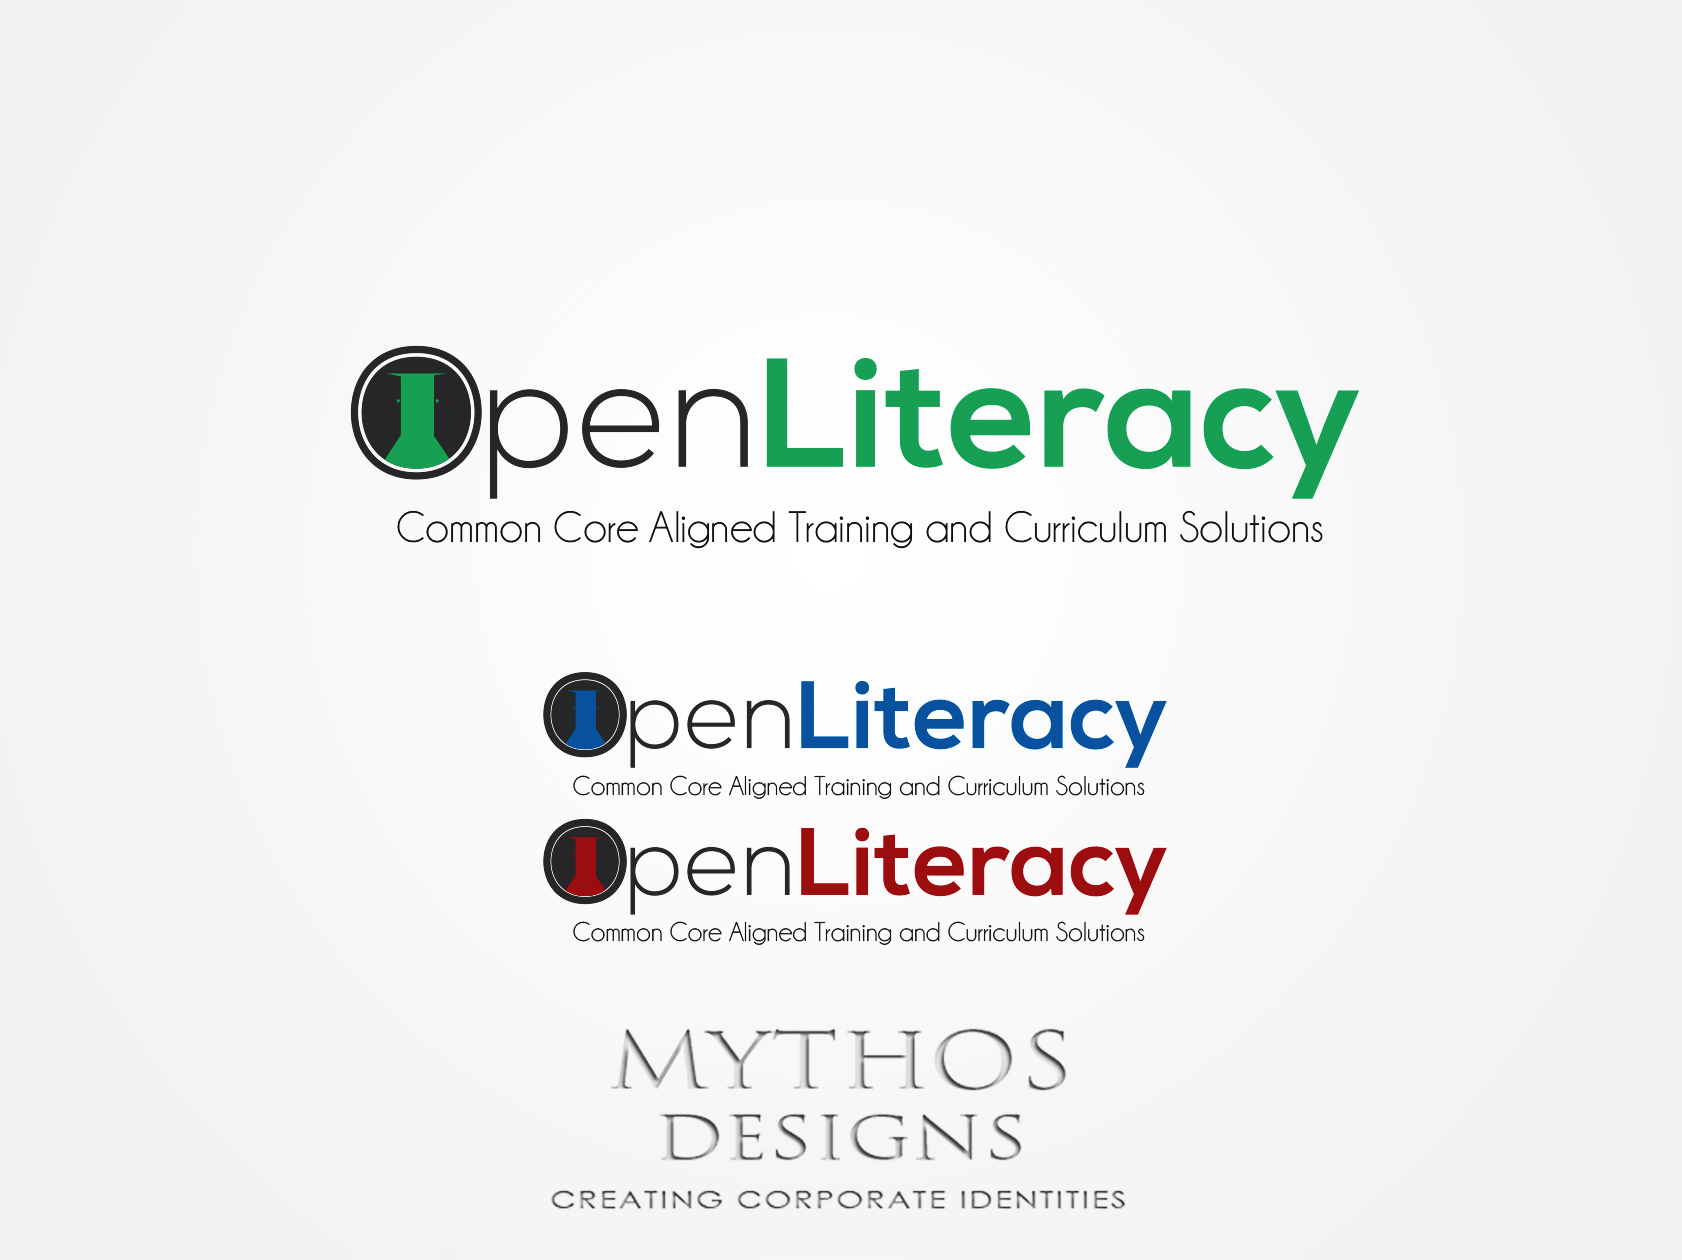 Logo Design by Mythos Designs - Entry No. 107 in the Logo Design Contest Inspiring Logo Design for OpenLiteracy.